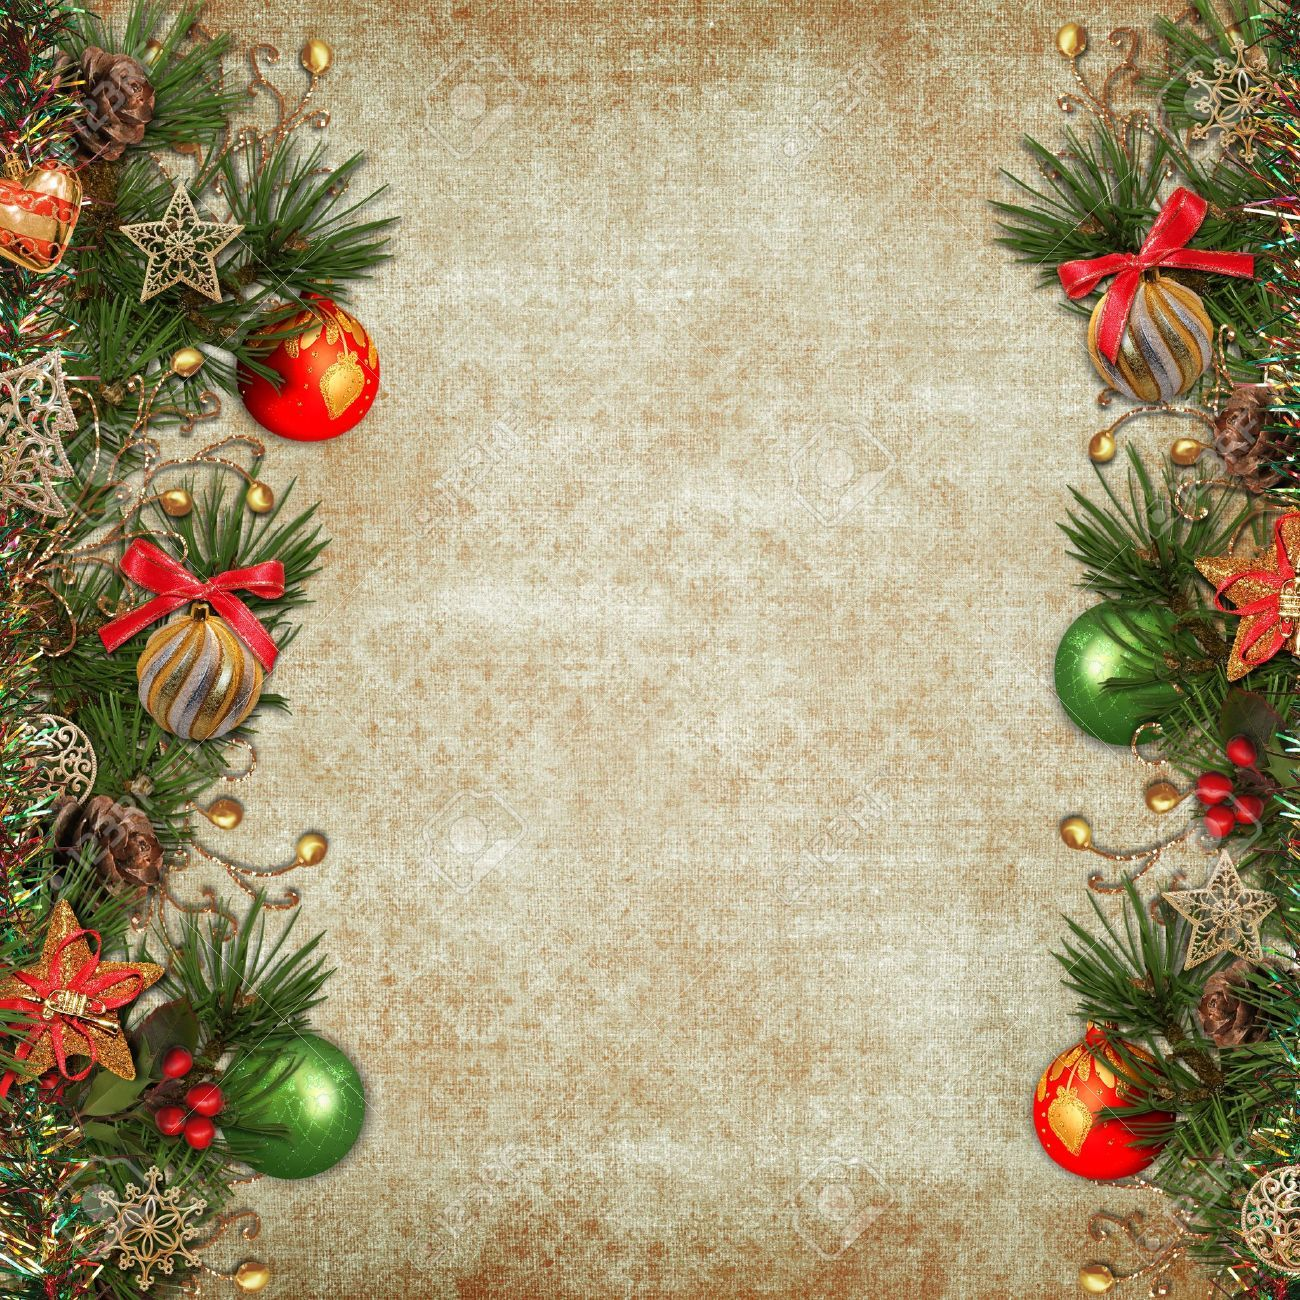 Vintage Christmas Background Stock Photo, Picture And